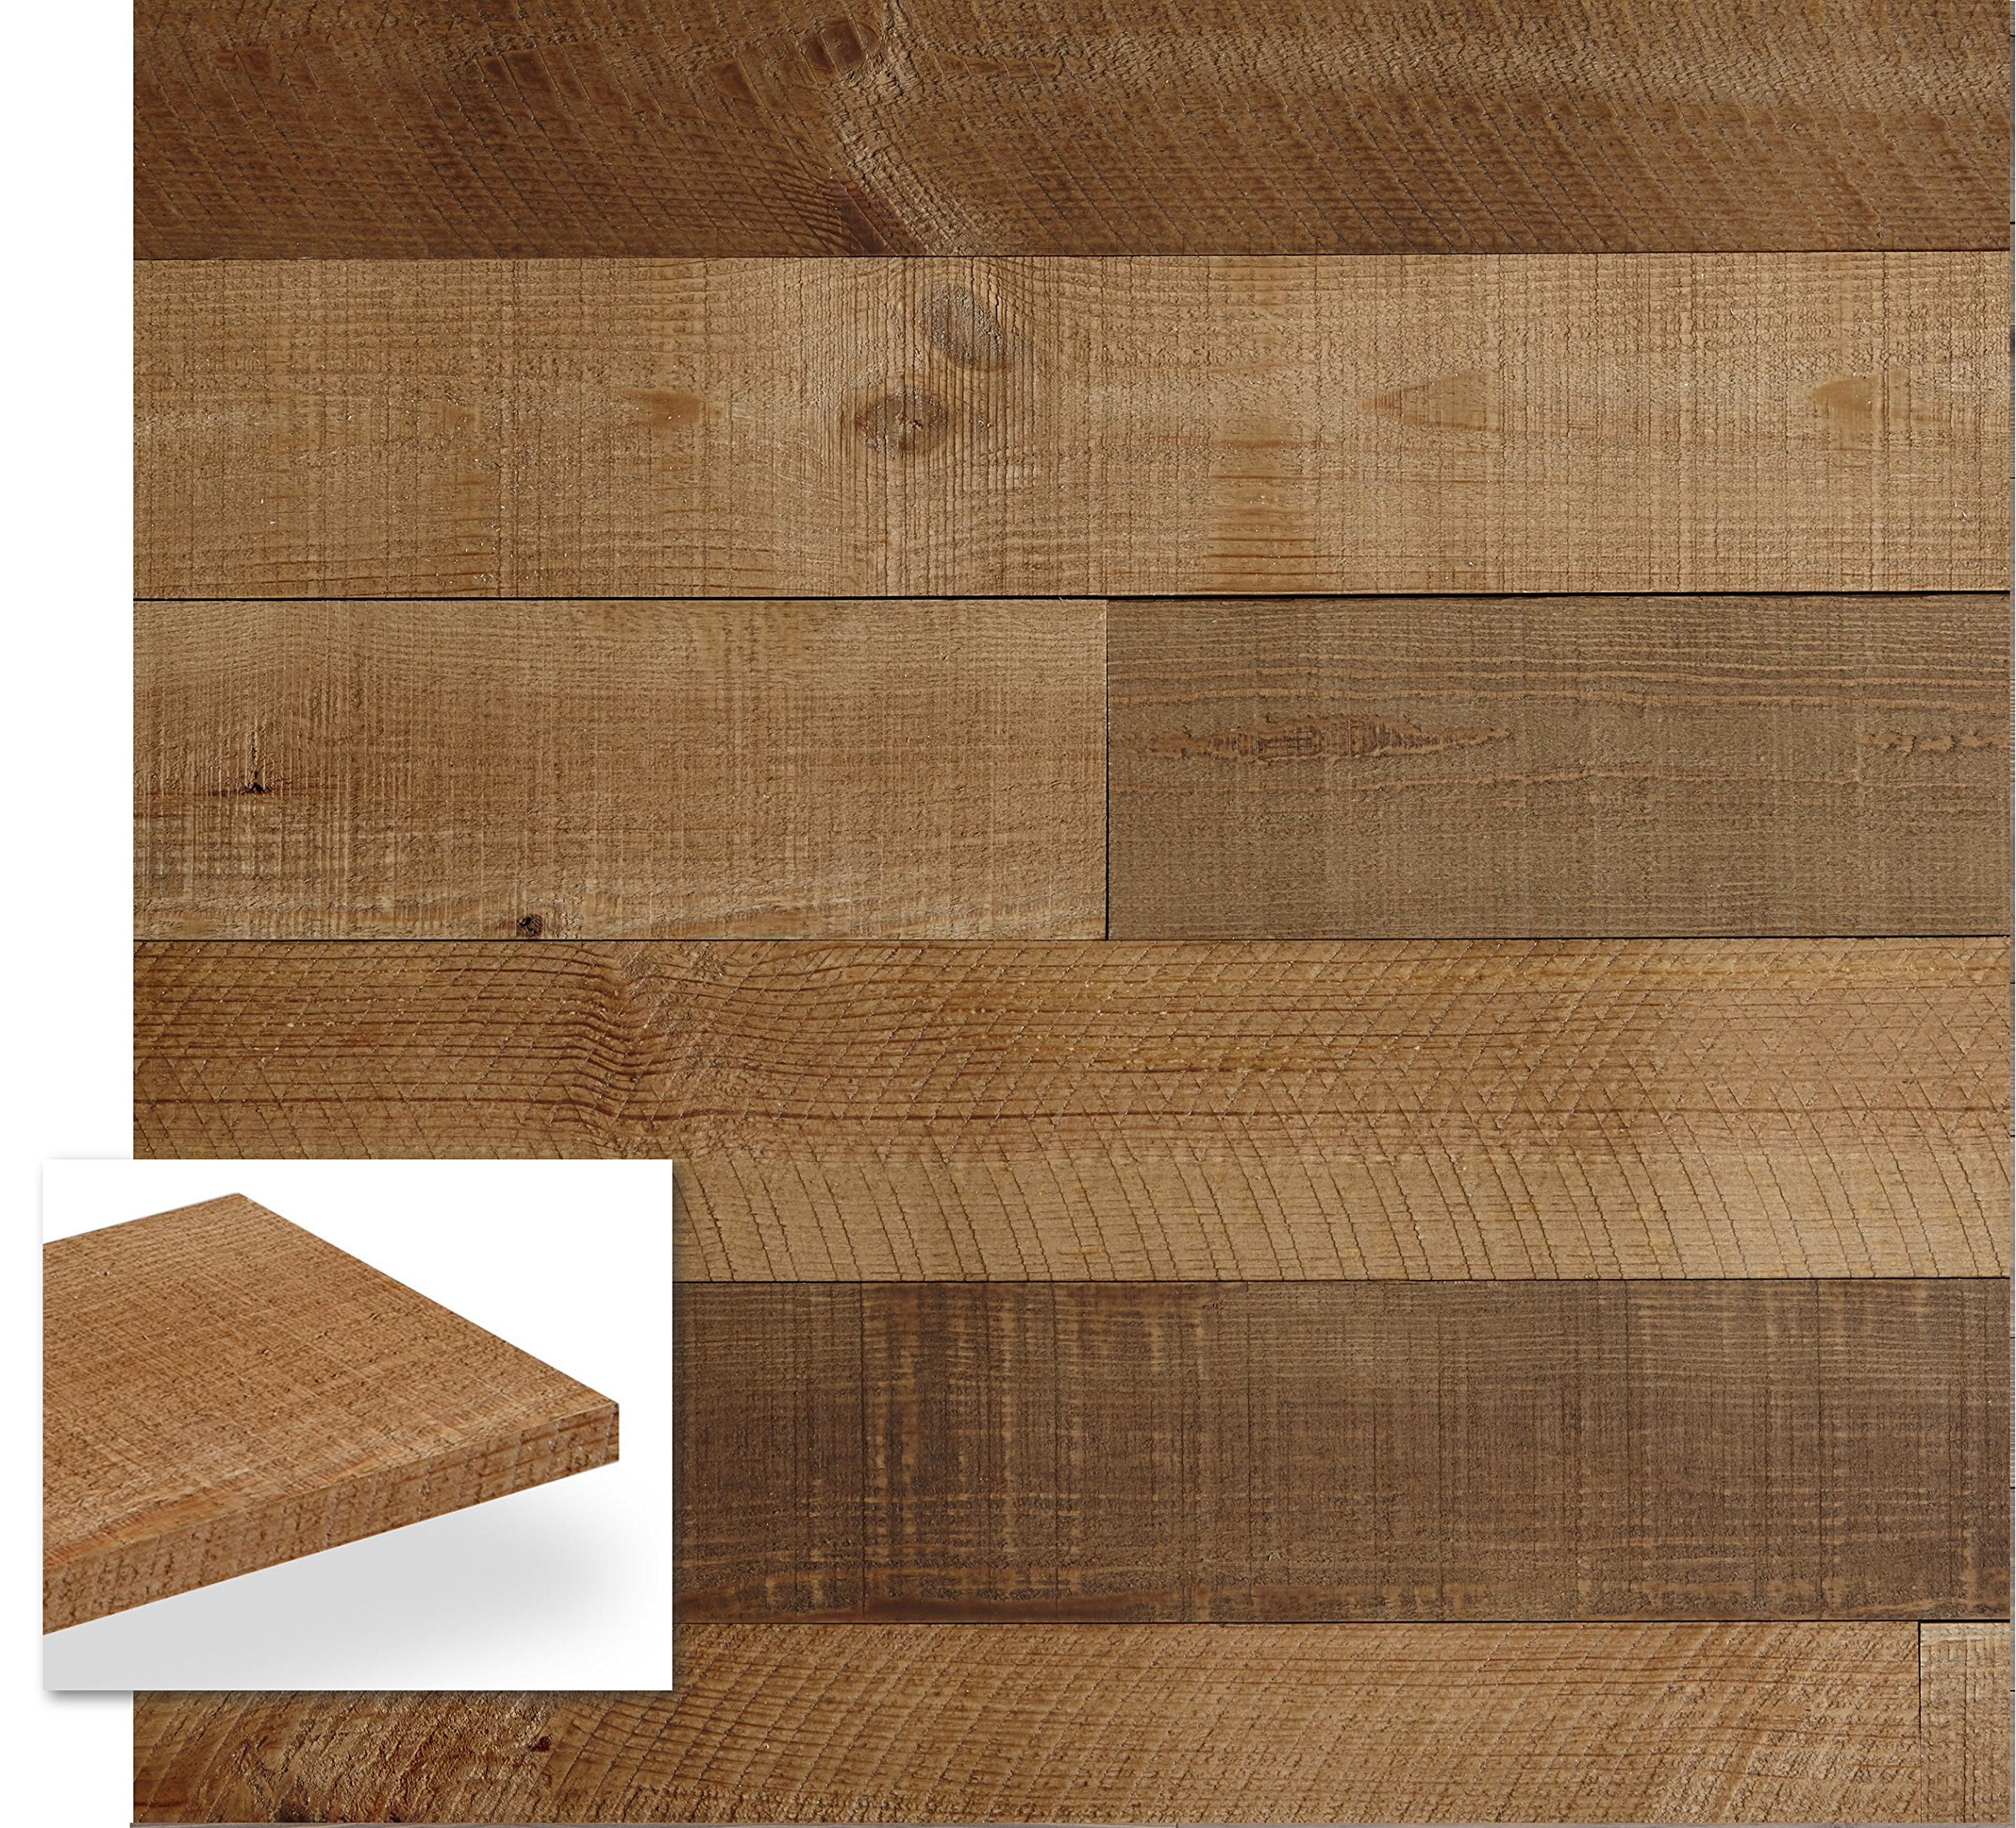 Timberwall - BARNWOOD Collection Heritage Brown - DIY Solid Wood Wall Panel - Easy Peel and Stick application - 9.7 Sq Ft